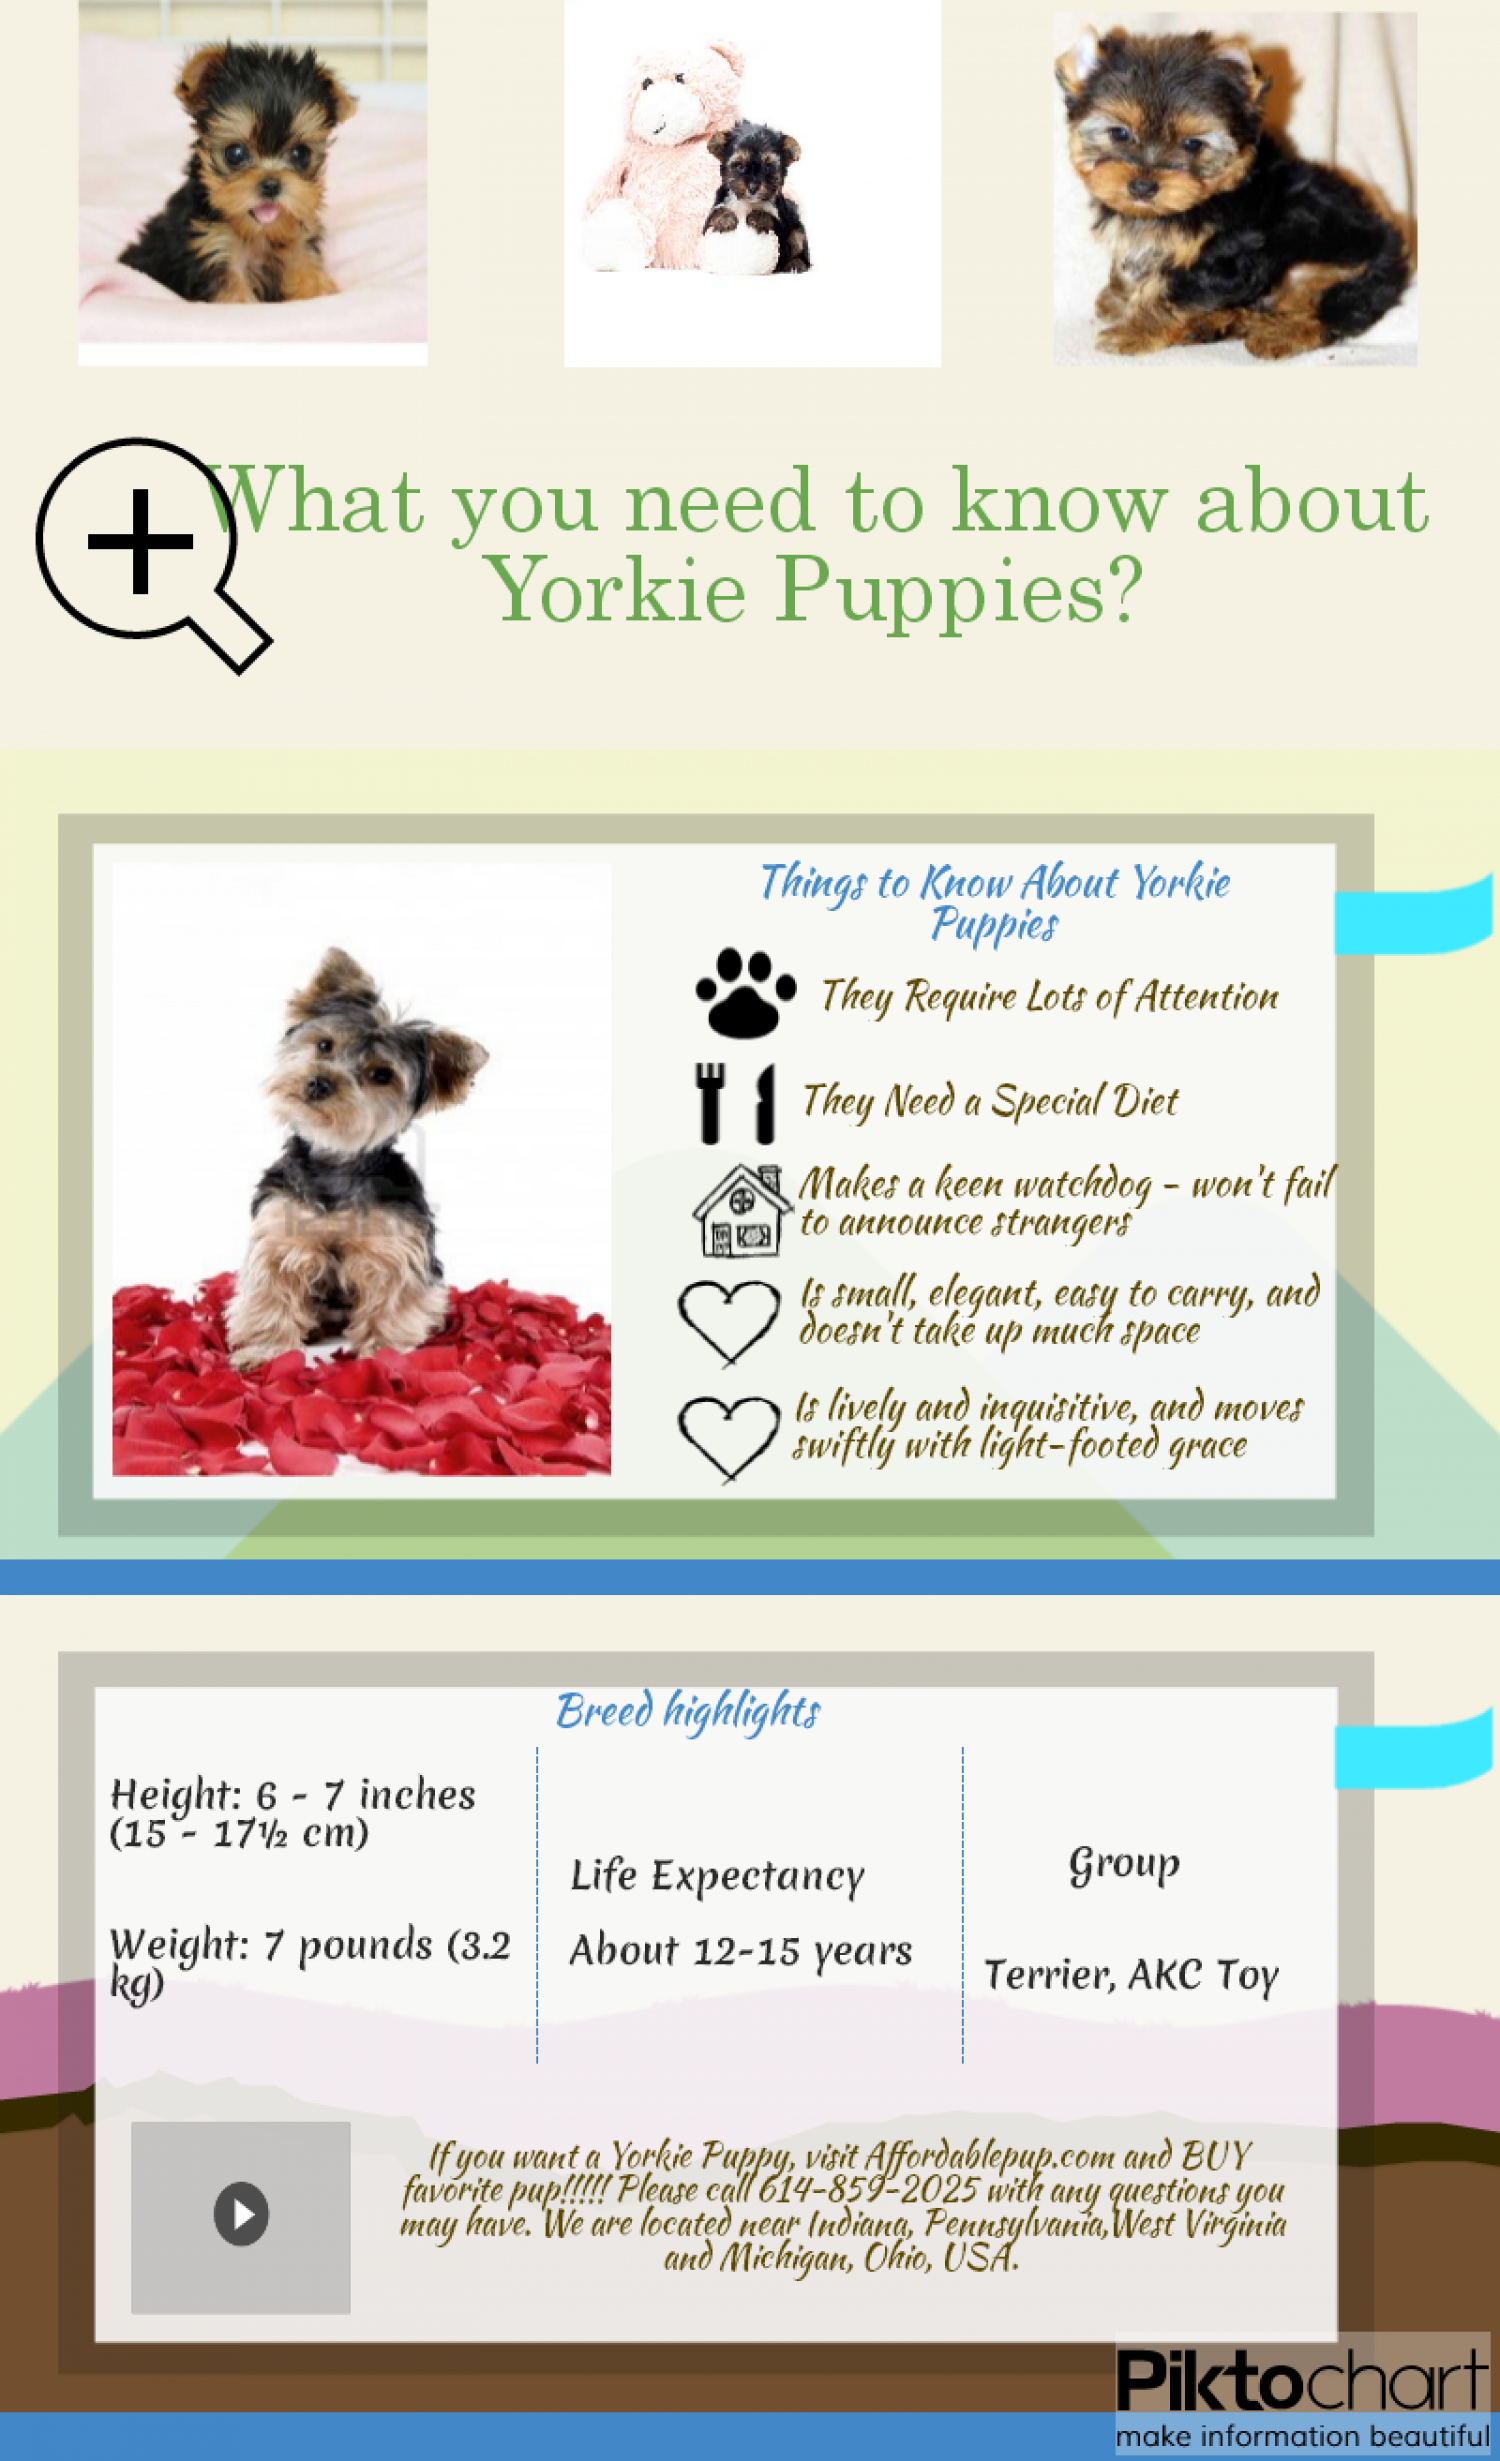 Yorkie Puppies - Things to know!!! Infographic